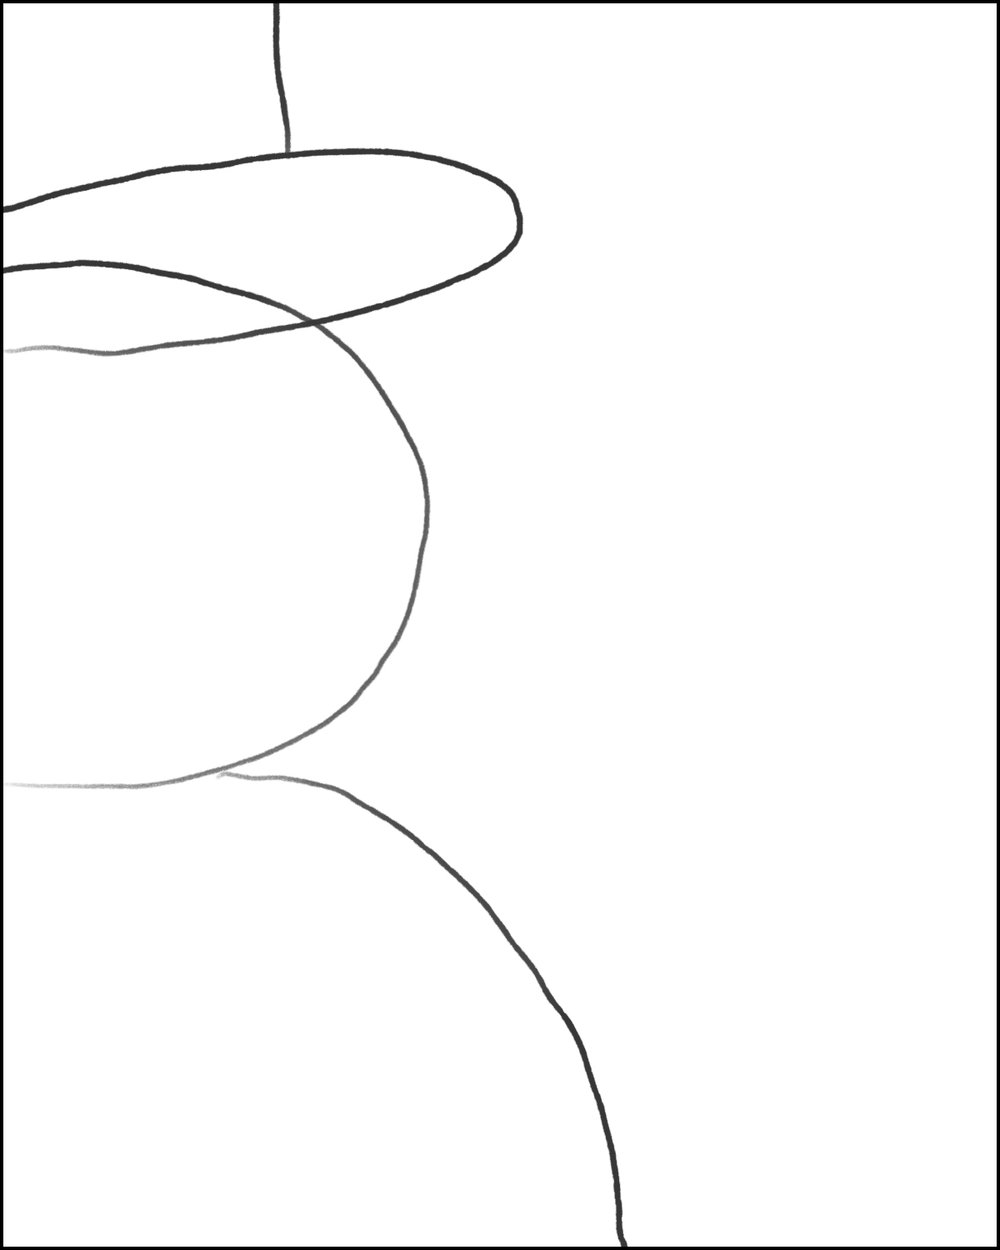 Step 4: Draw Line to Top of Canvas